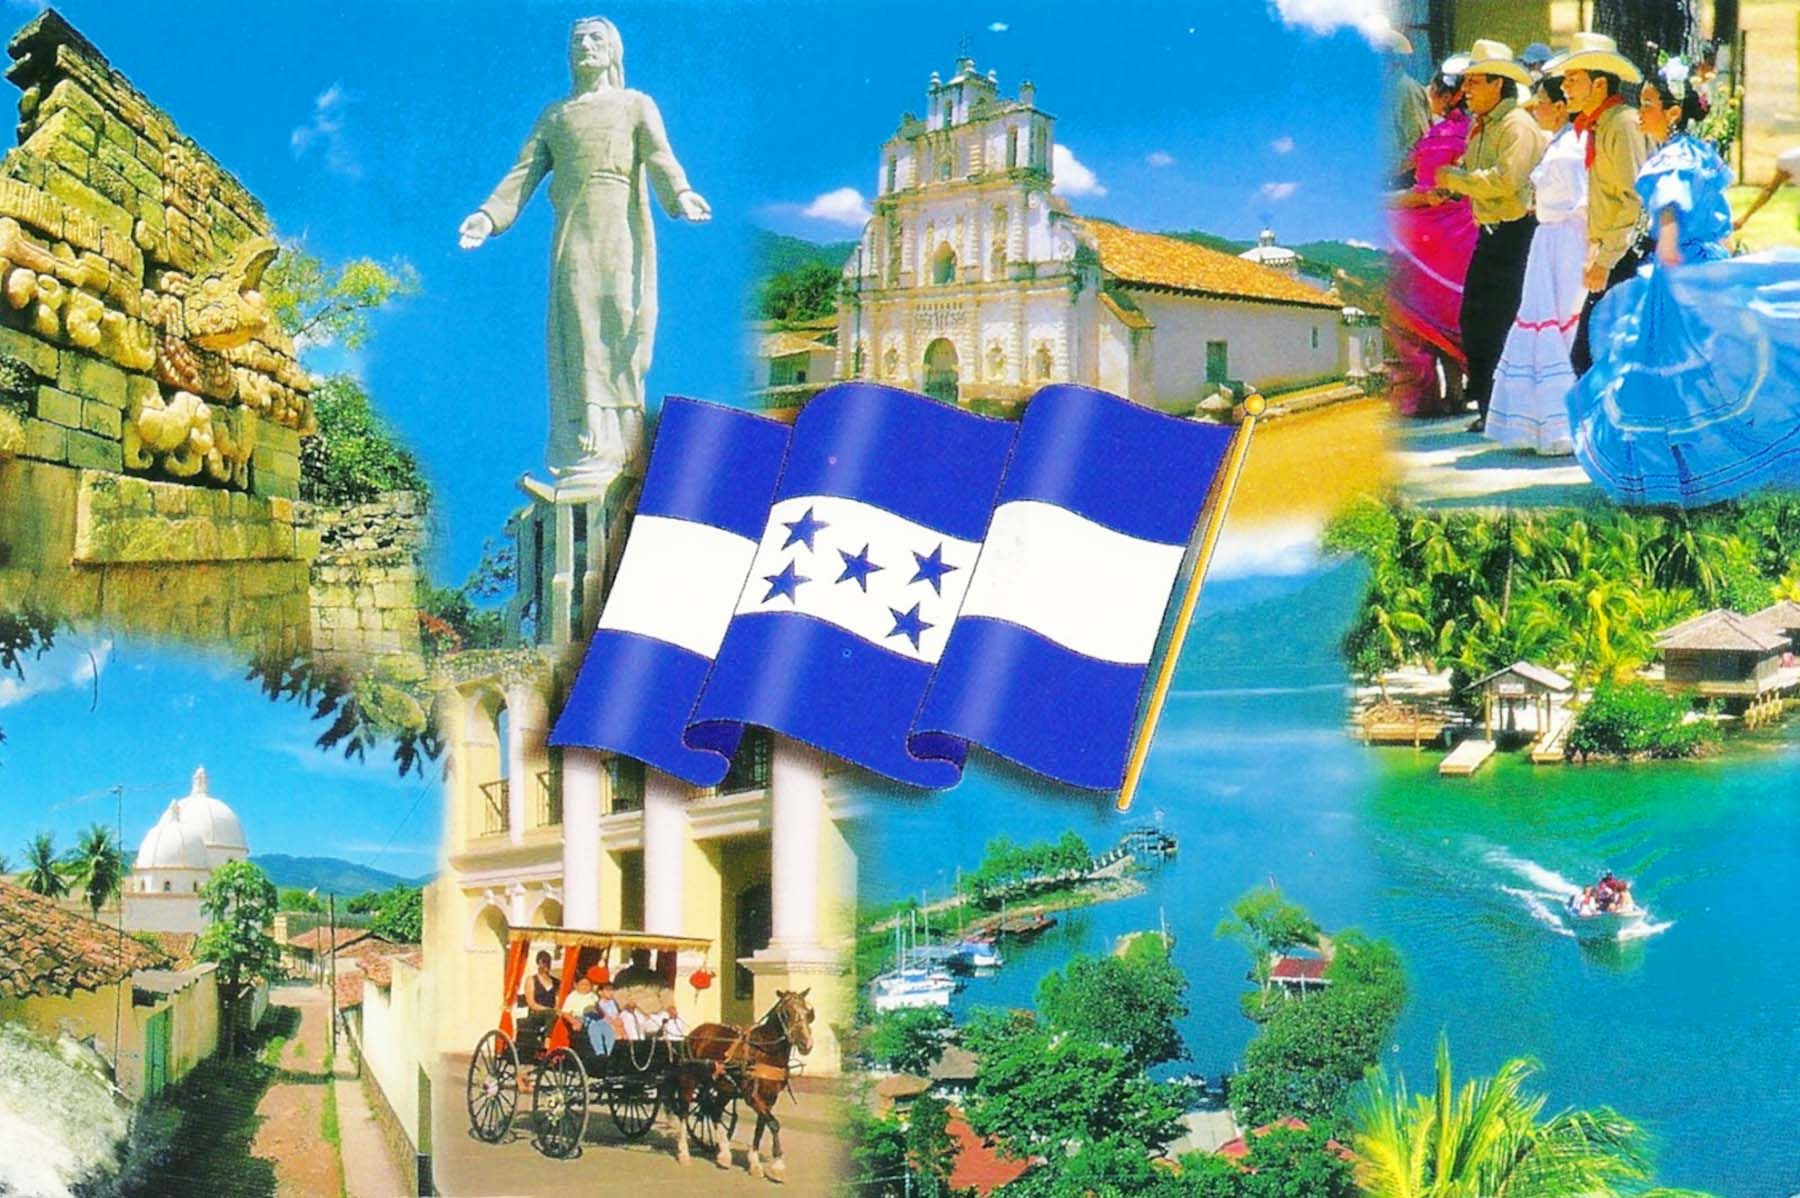 honduras tourist attractions - Google Search | Service trip ...